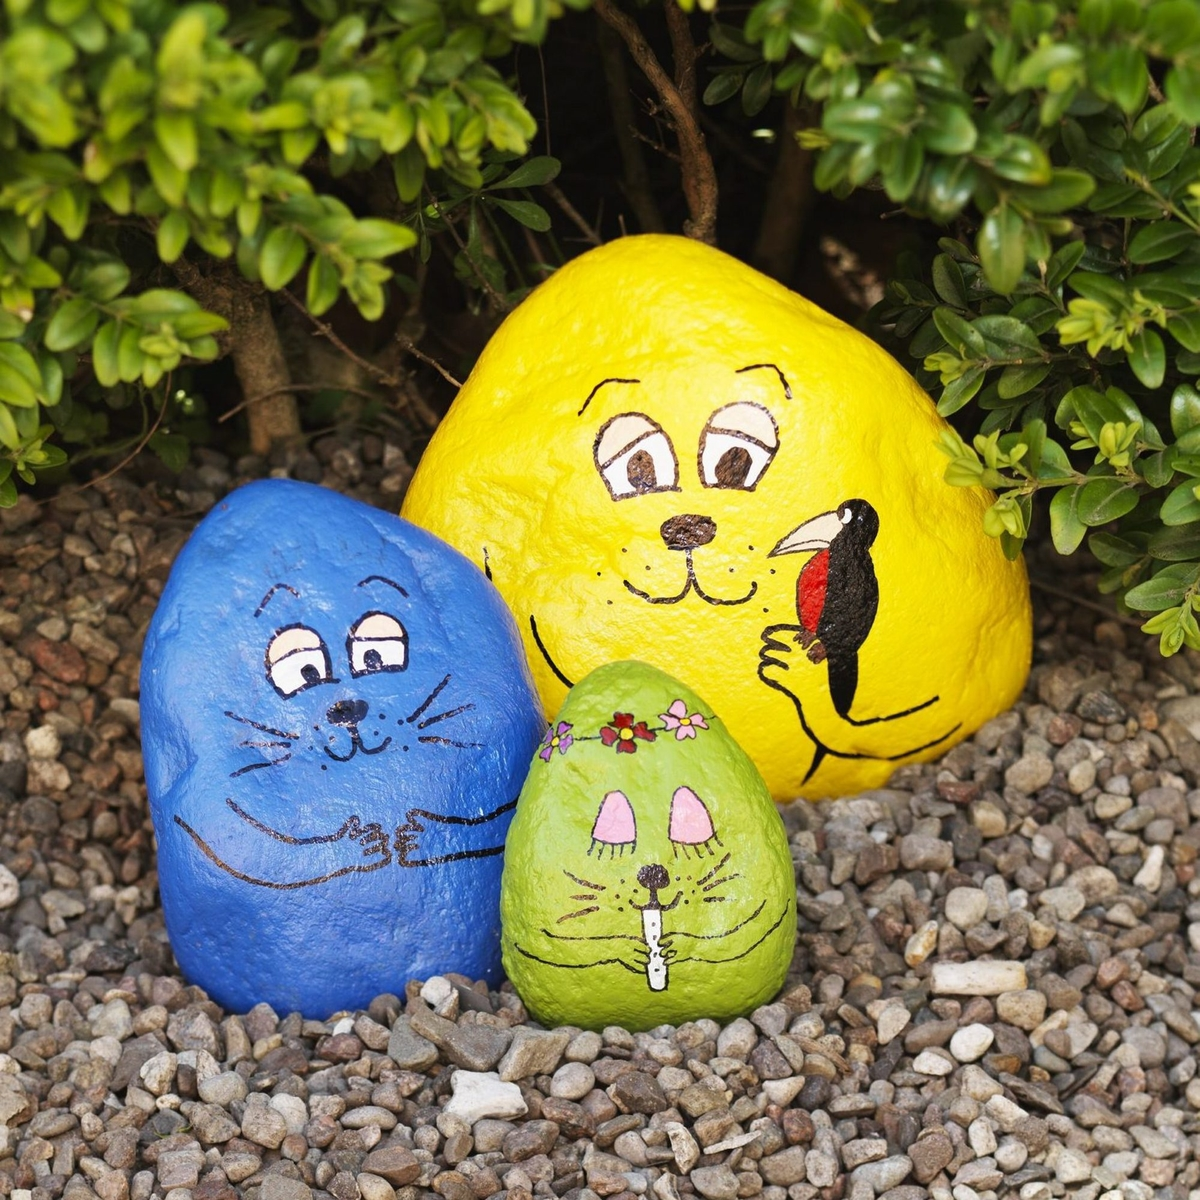 Paint colourful stone figures